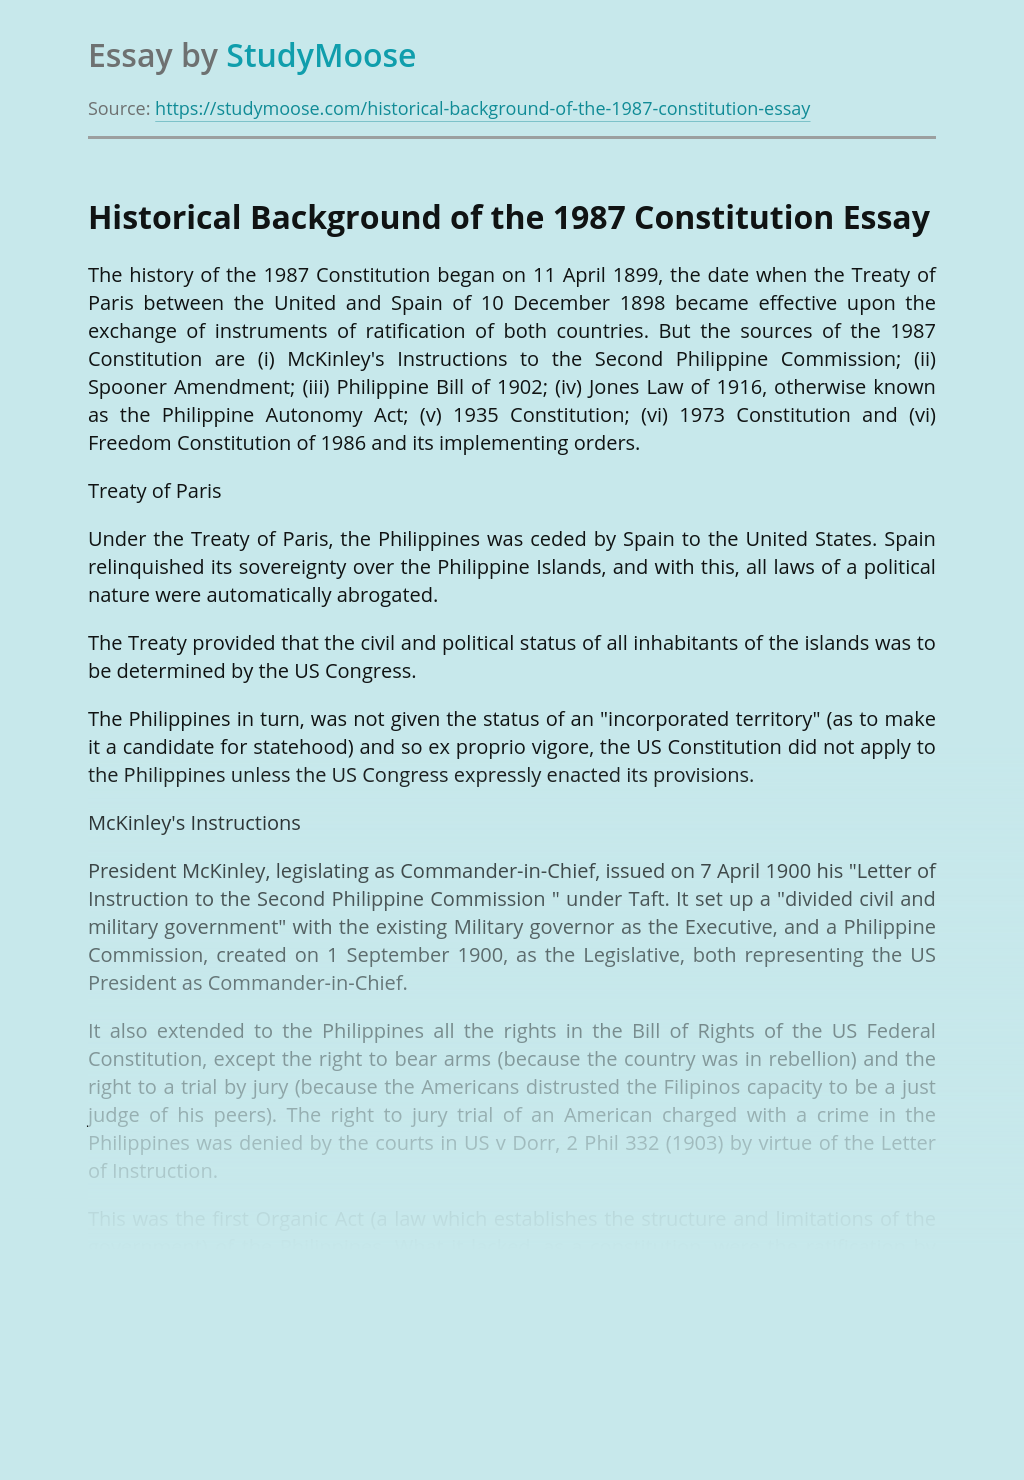 Historical Background of the 1987 Constitution